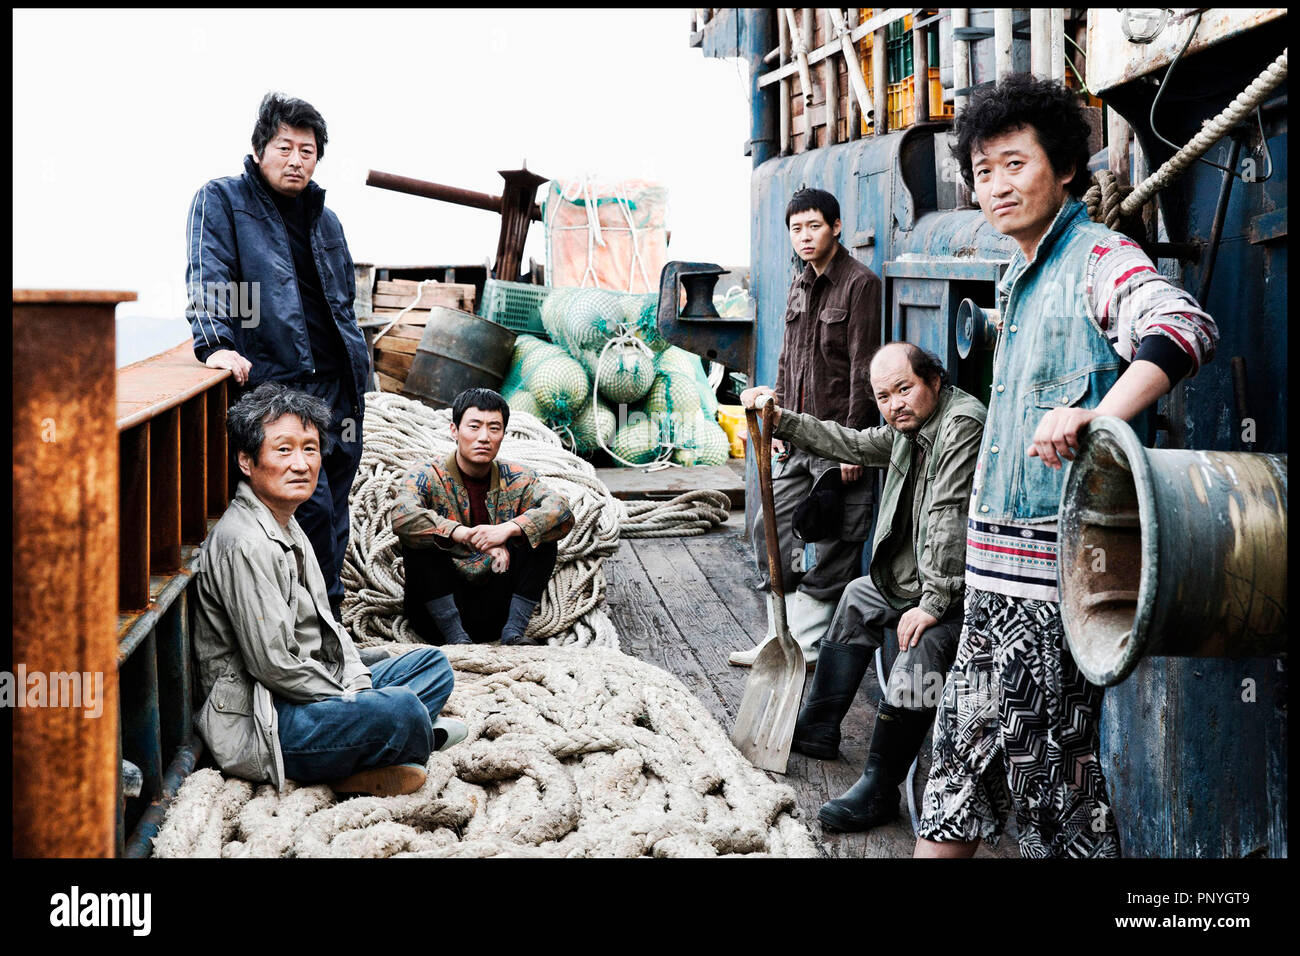 Sung Hee Stock Photos & Sung Hee Stock Images - Alamy